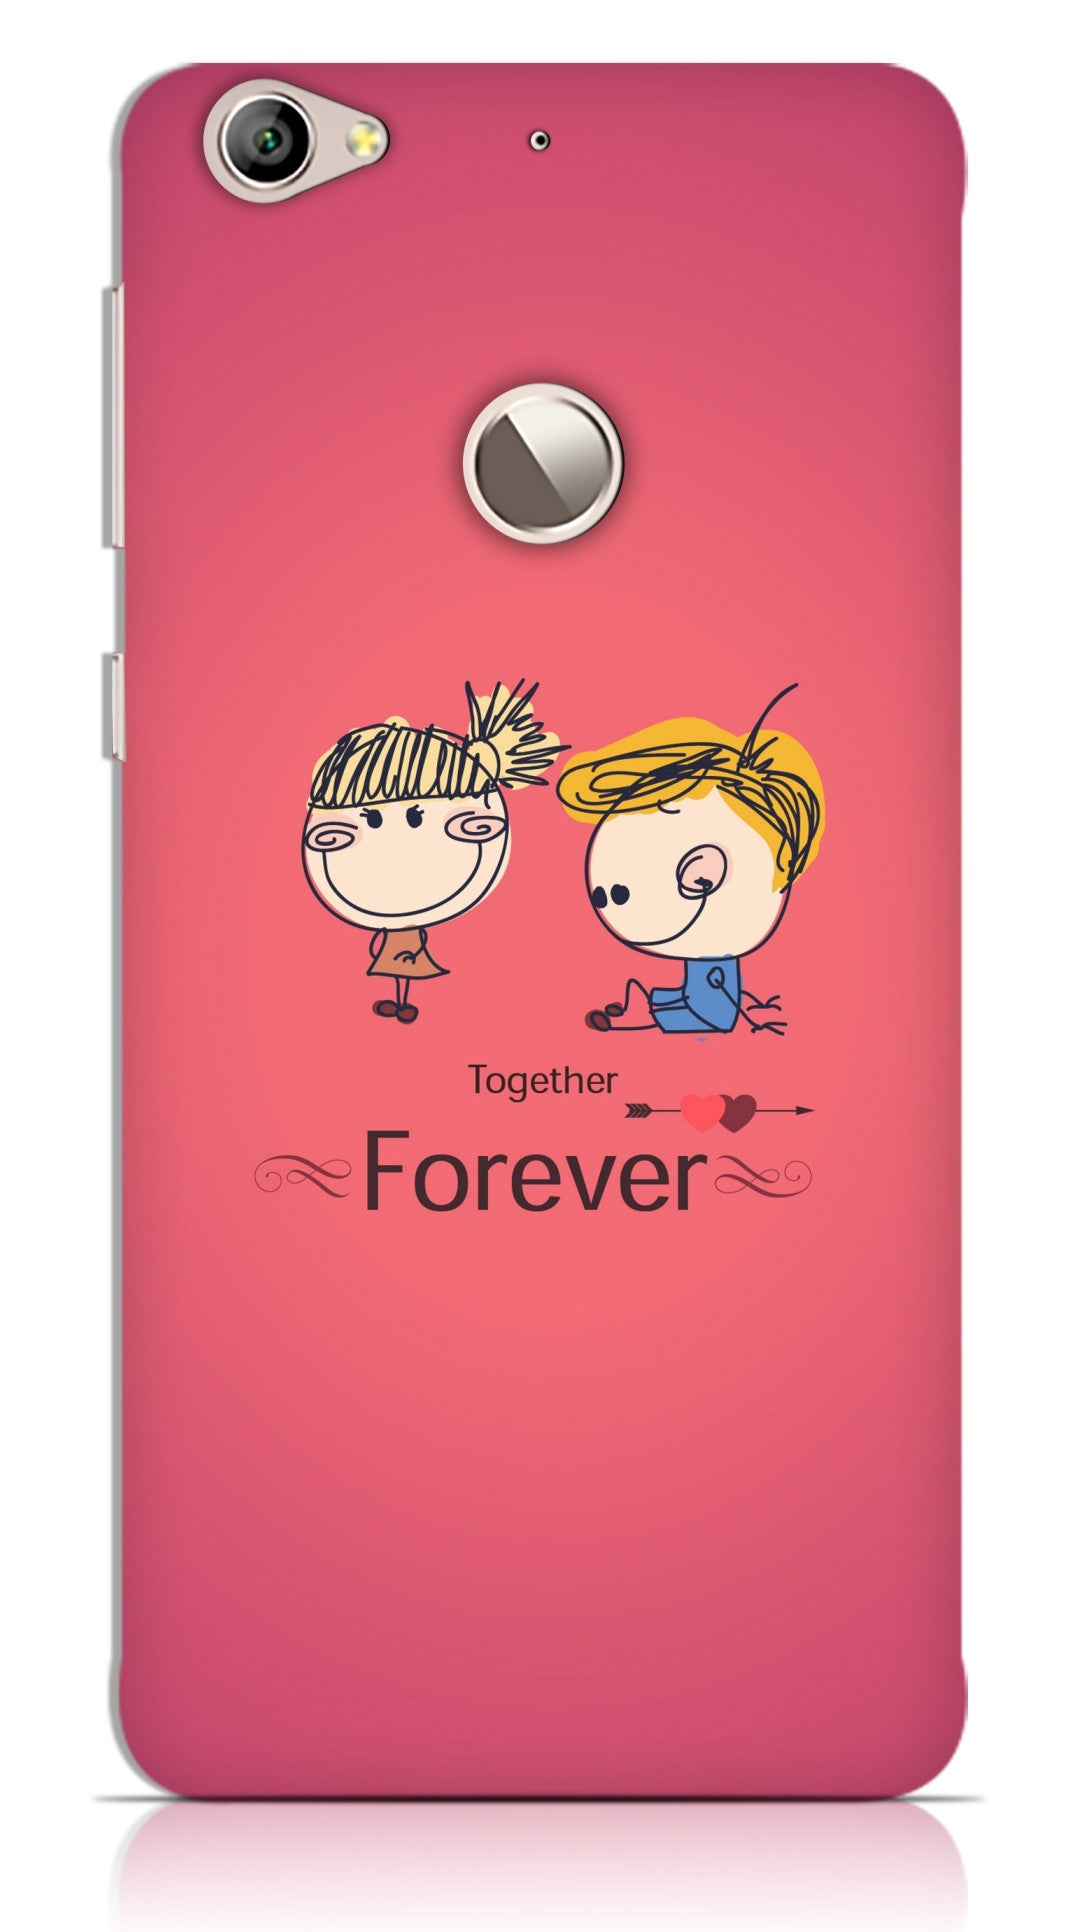 Together Forever Mobile Cover/Case for Letv 1S - designermobilecovers